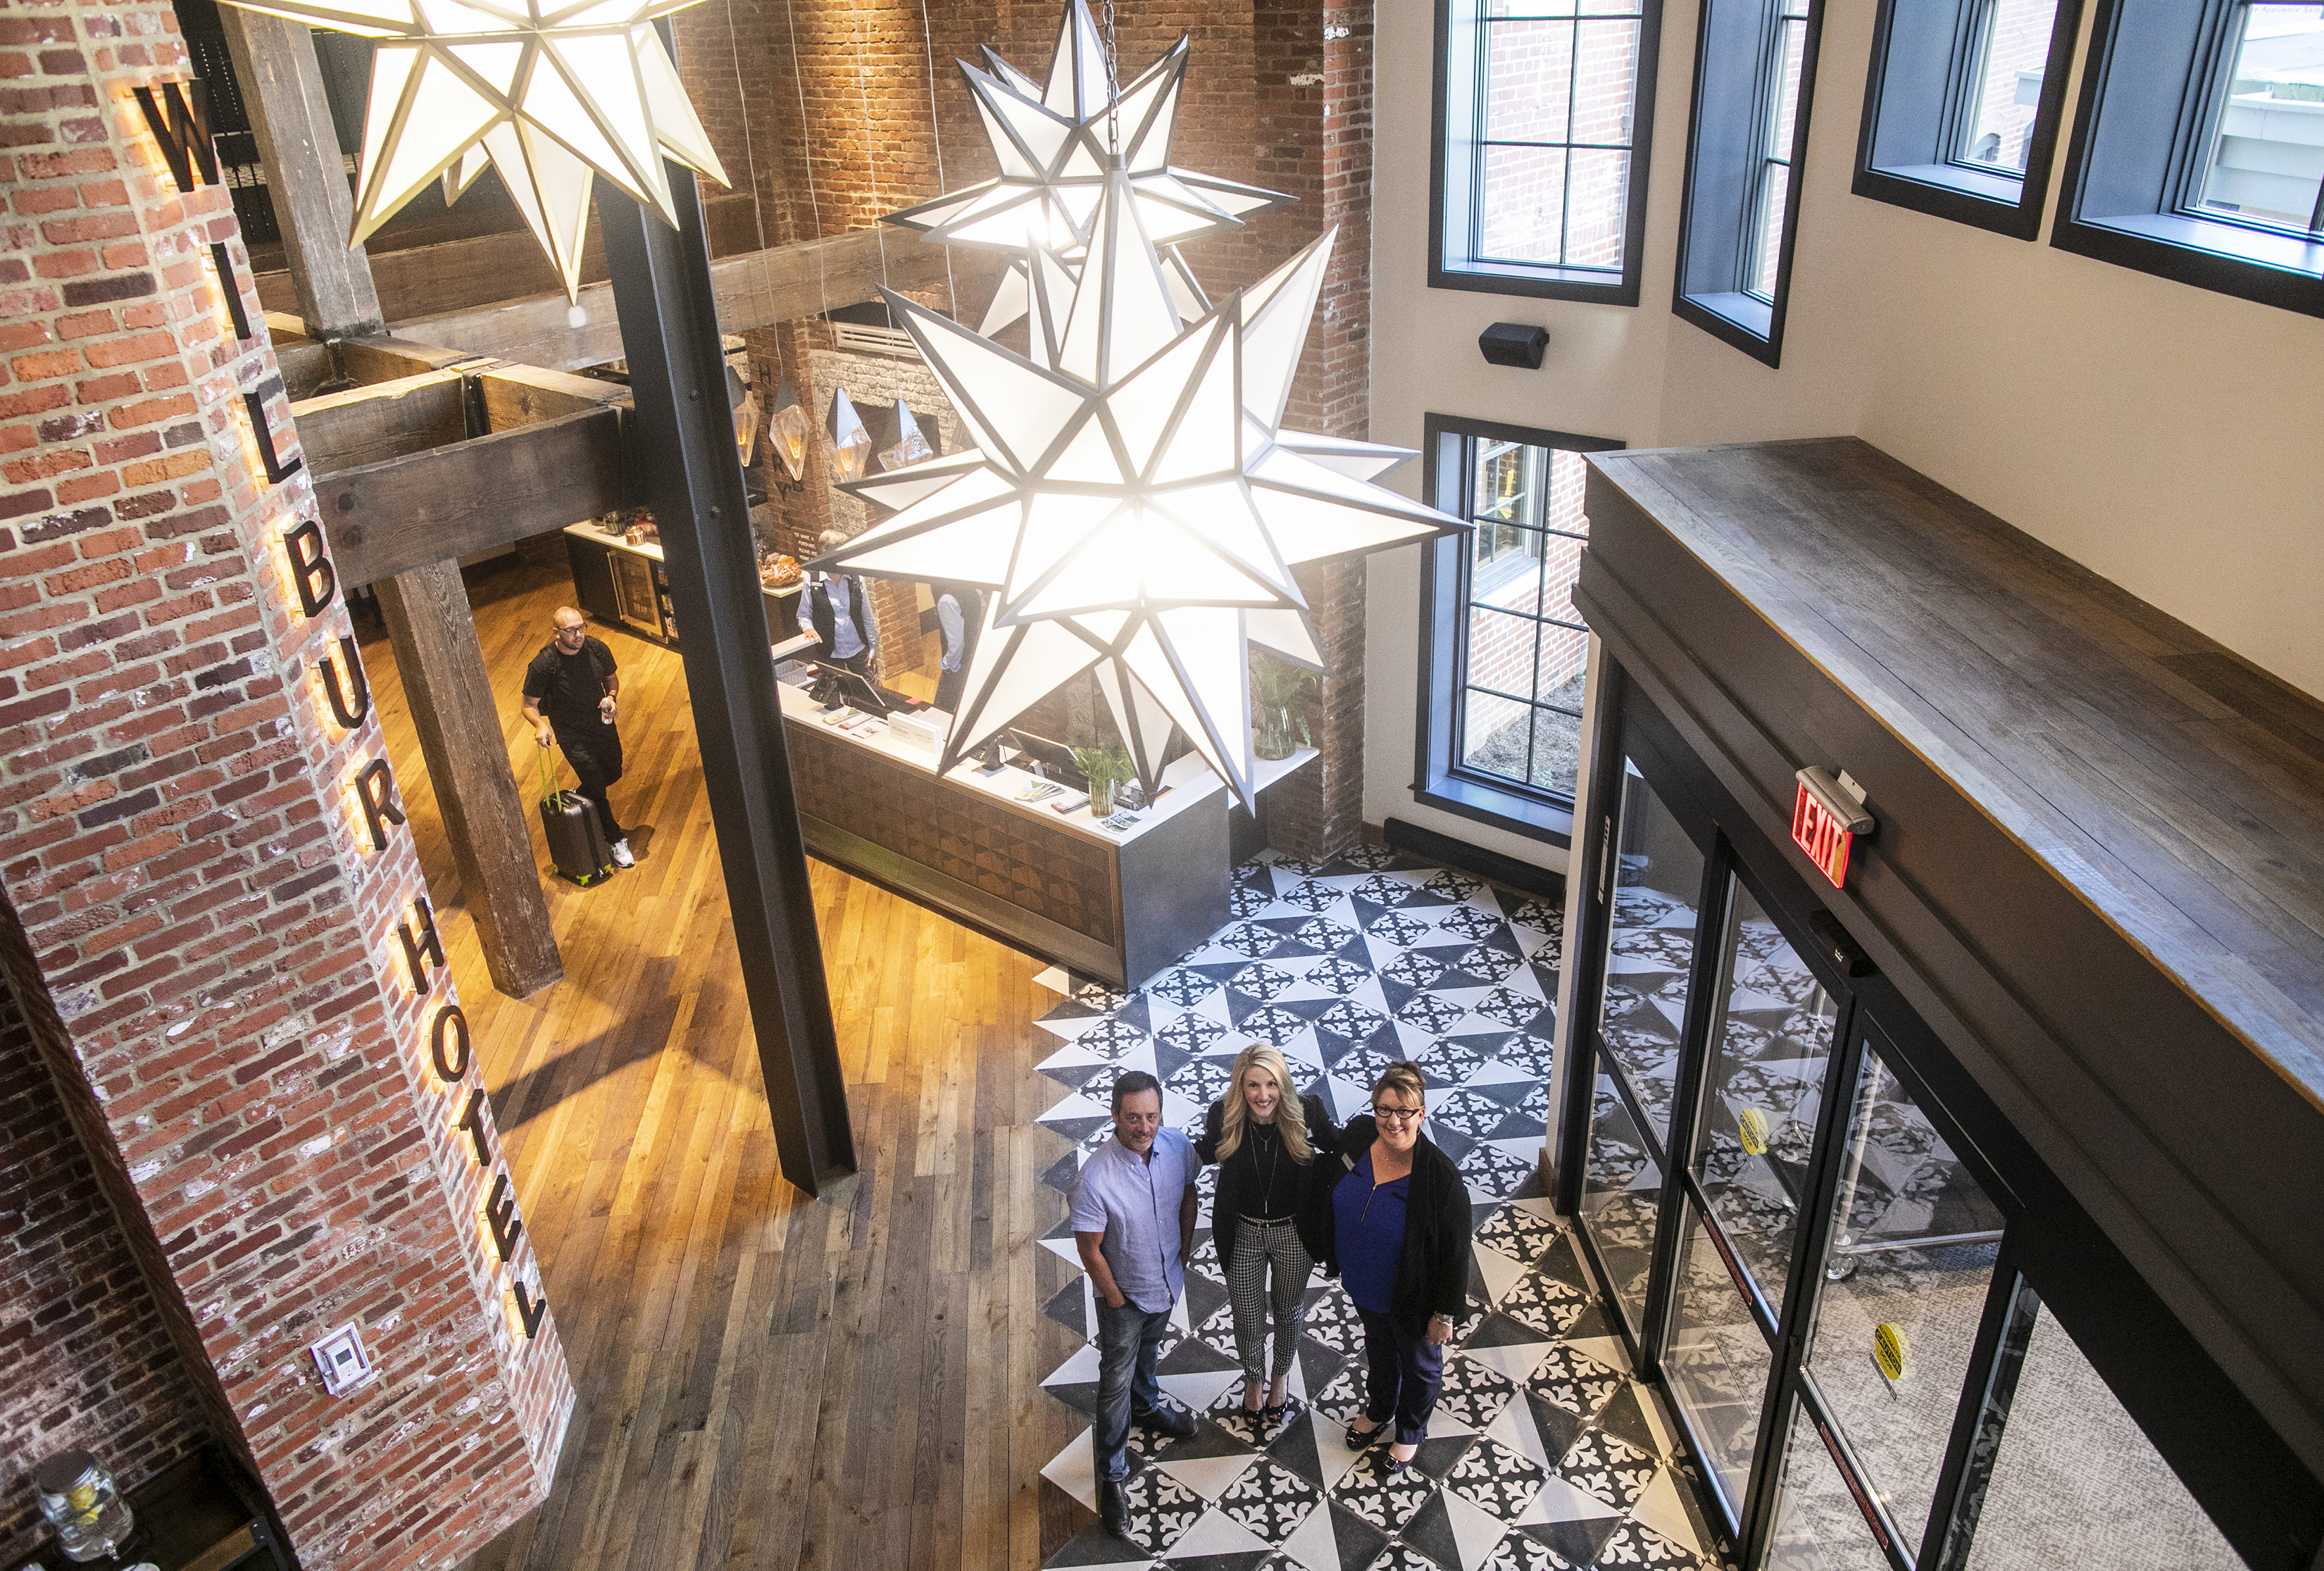 A former Pa. chocolate factory transforms into a place to live, stay and eat: Take a look inside